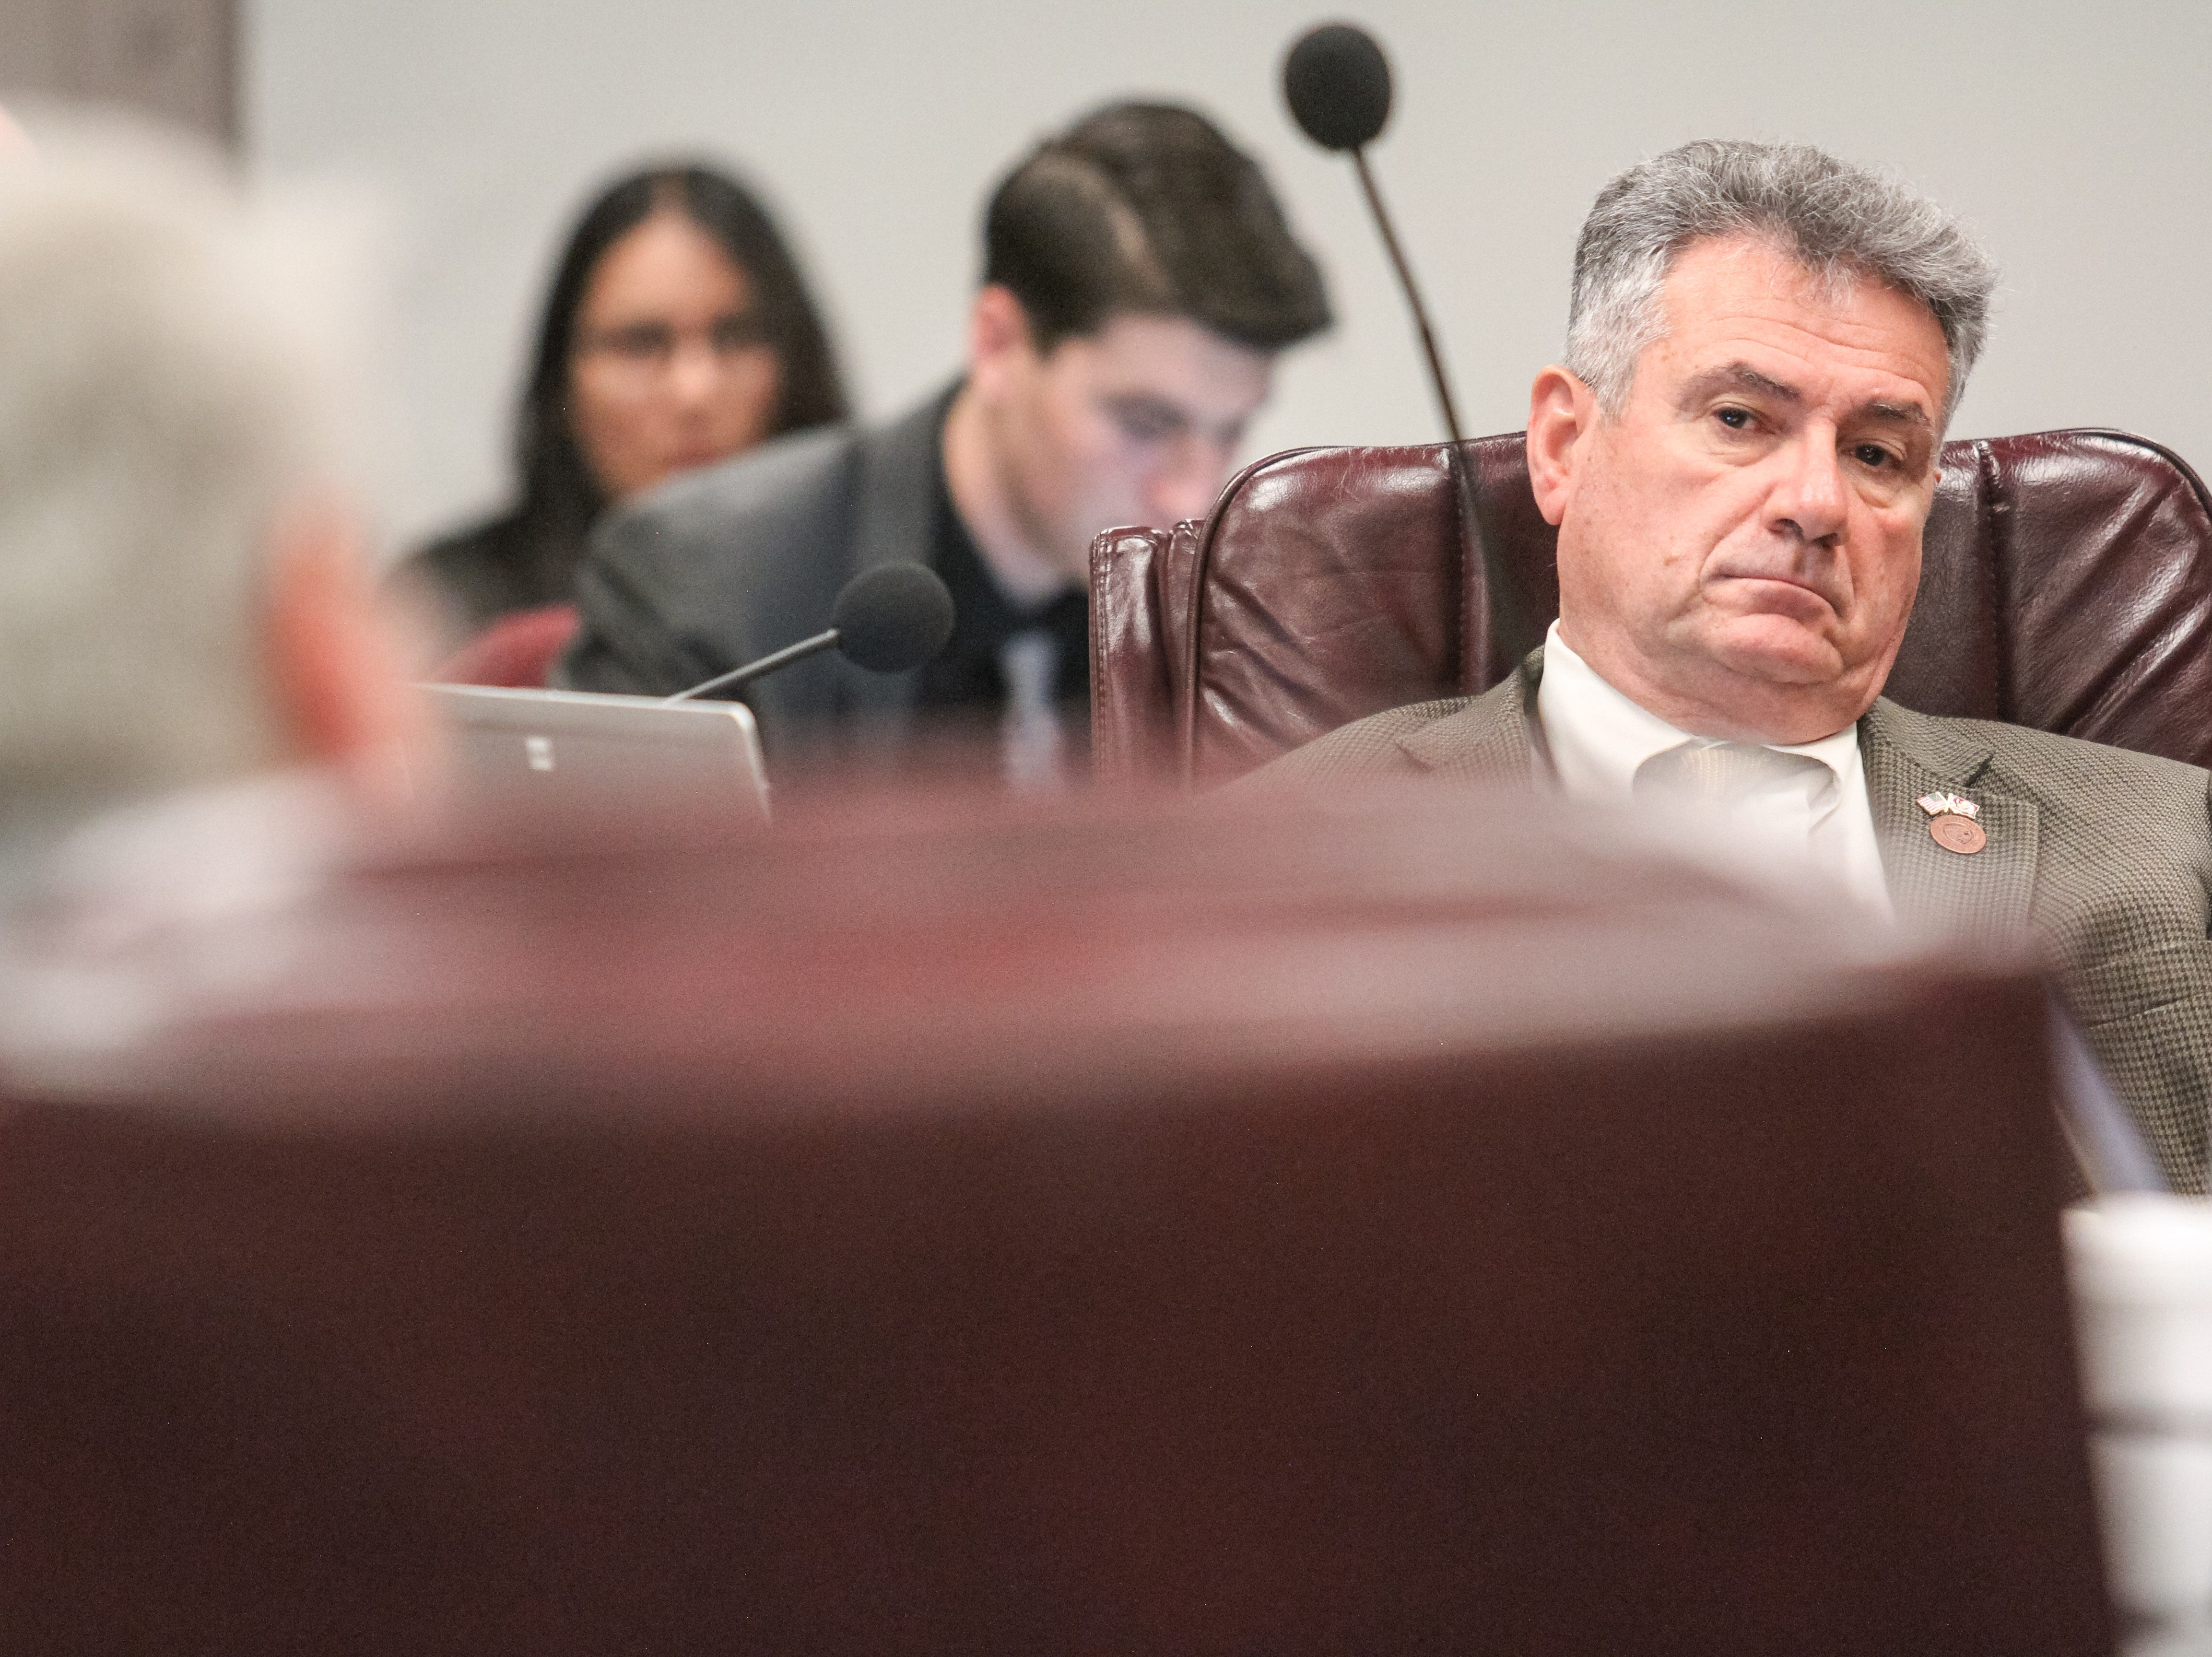 Sen. Sonny Borrelli listens during a Senate Transportation and Public Safety hearing at the Arizona State Capitol in Phoenix, Arizona on Wednesday, Feb. 20, 2019.